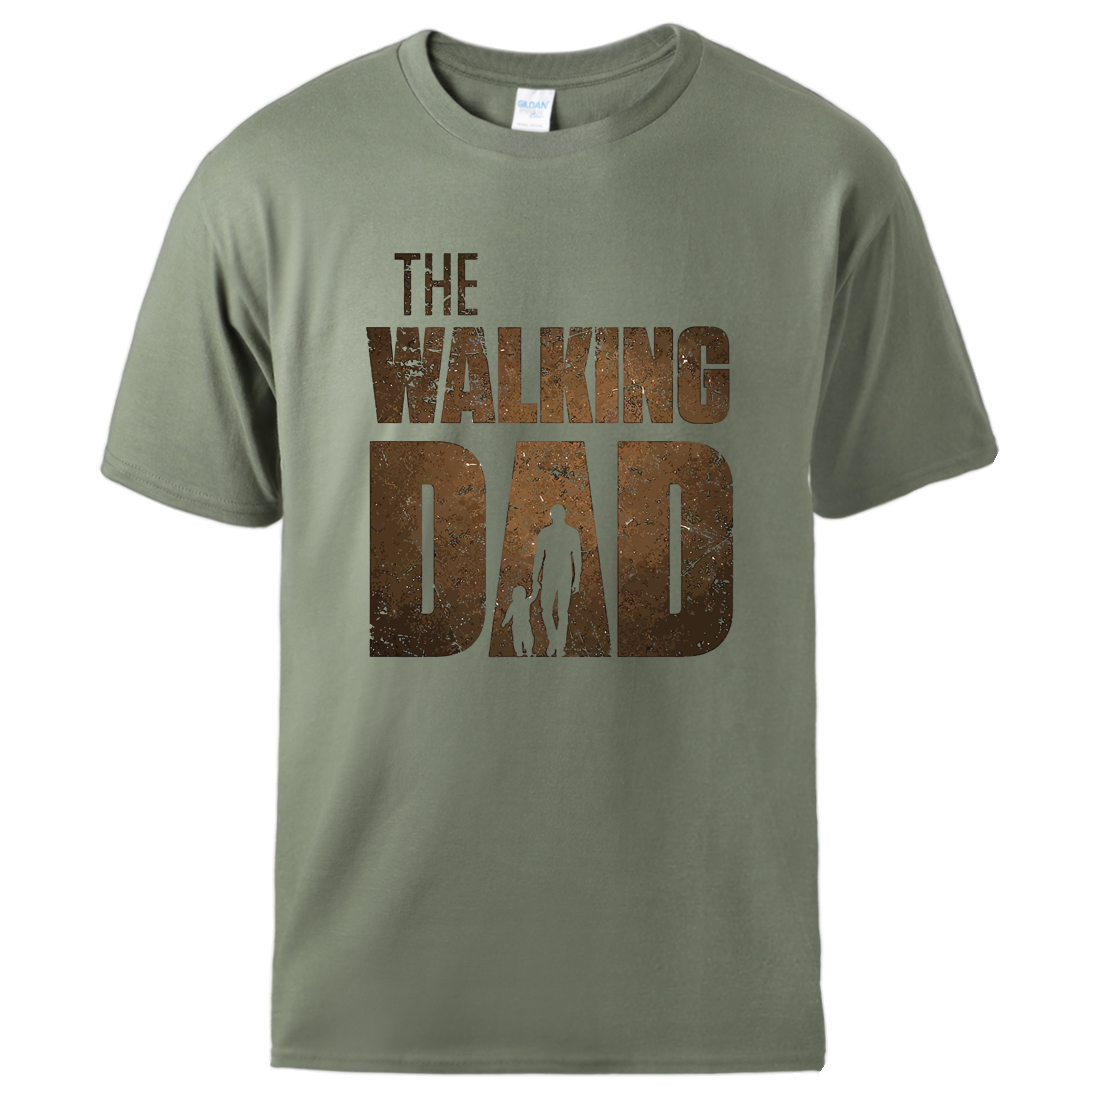 Man T-Shirt Workout-Top Father-Day-Gift Homme Hot-Sell Casual Walking Dad Summer Print